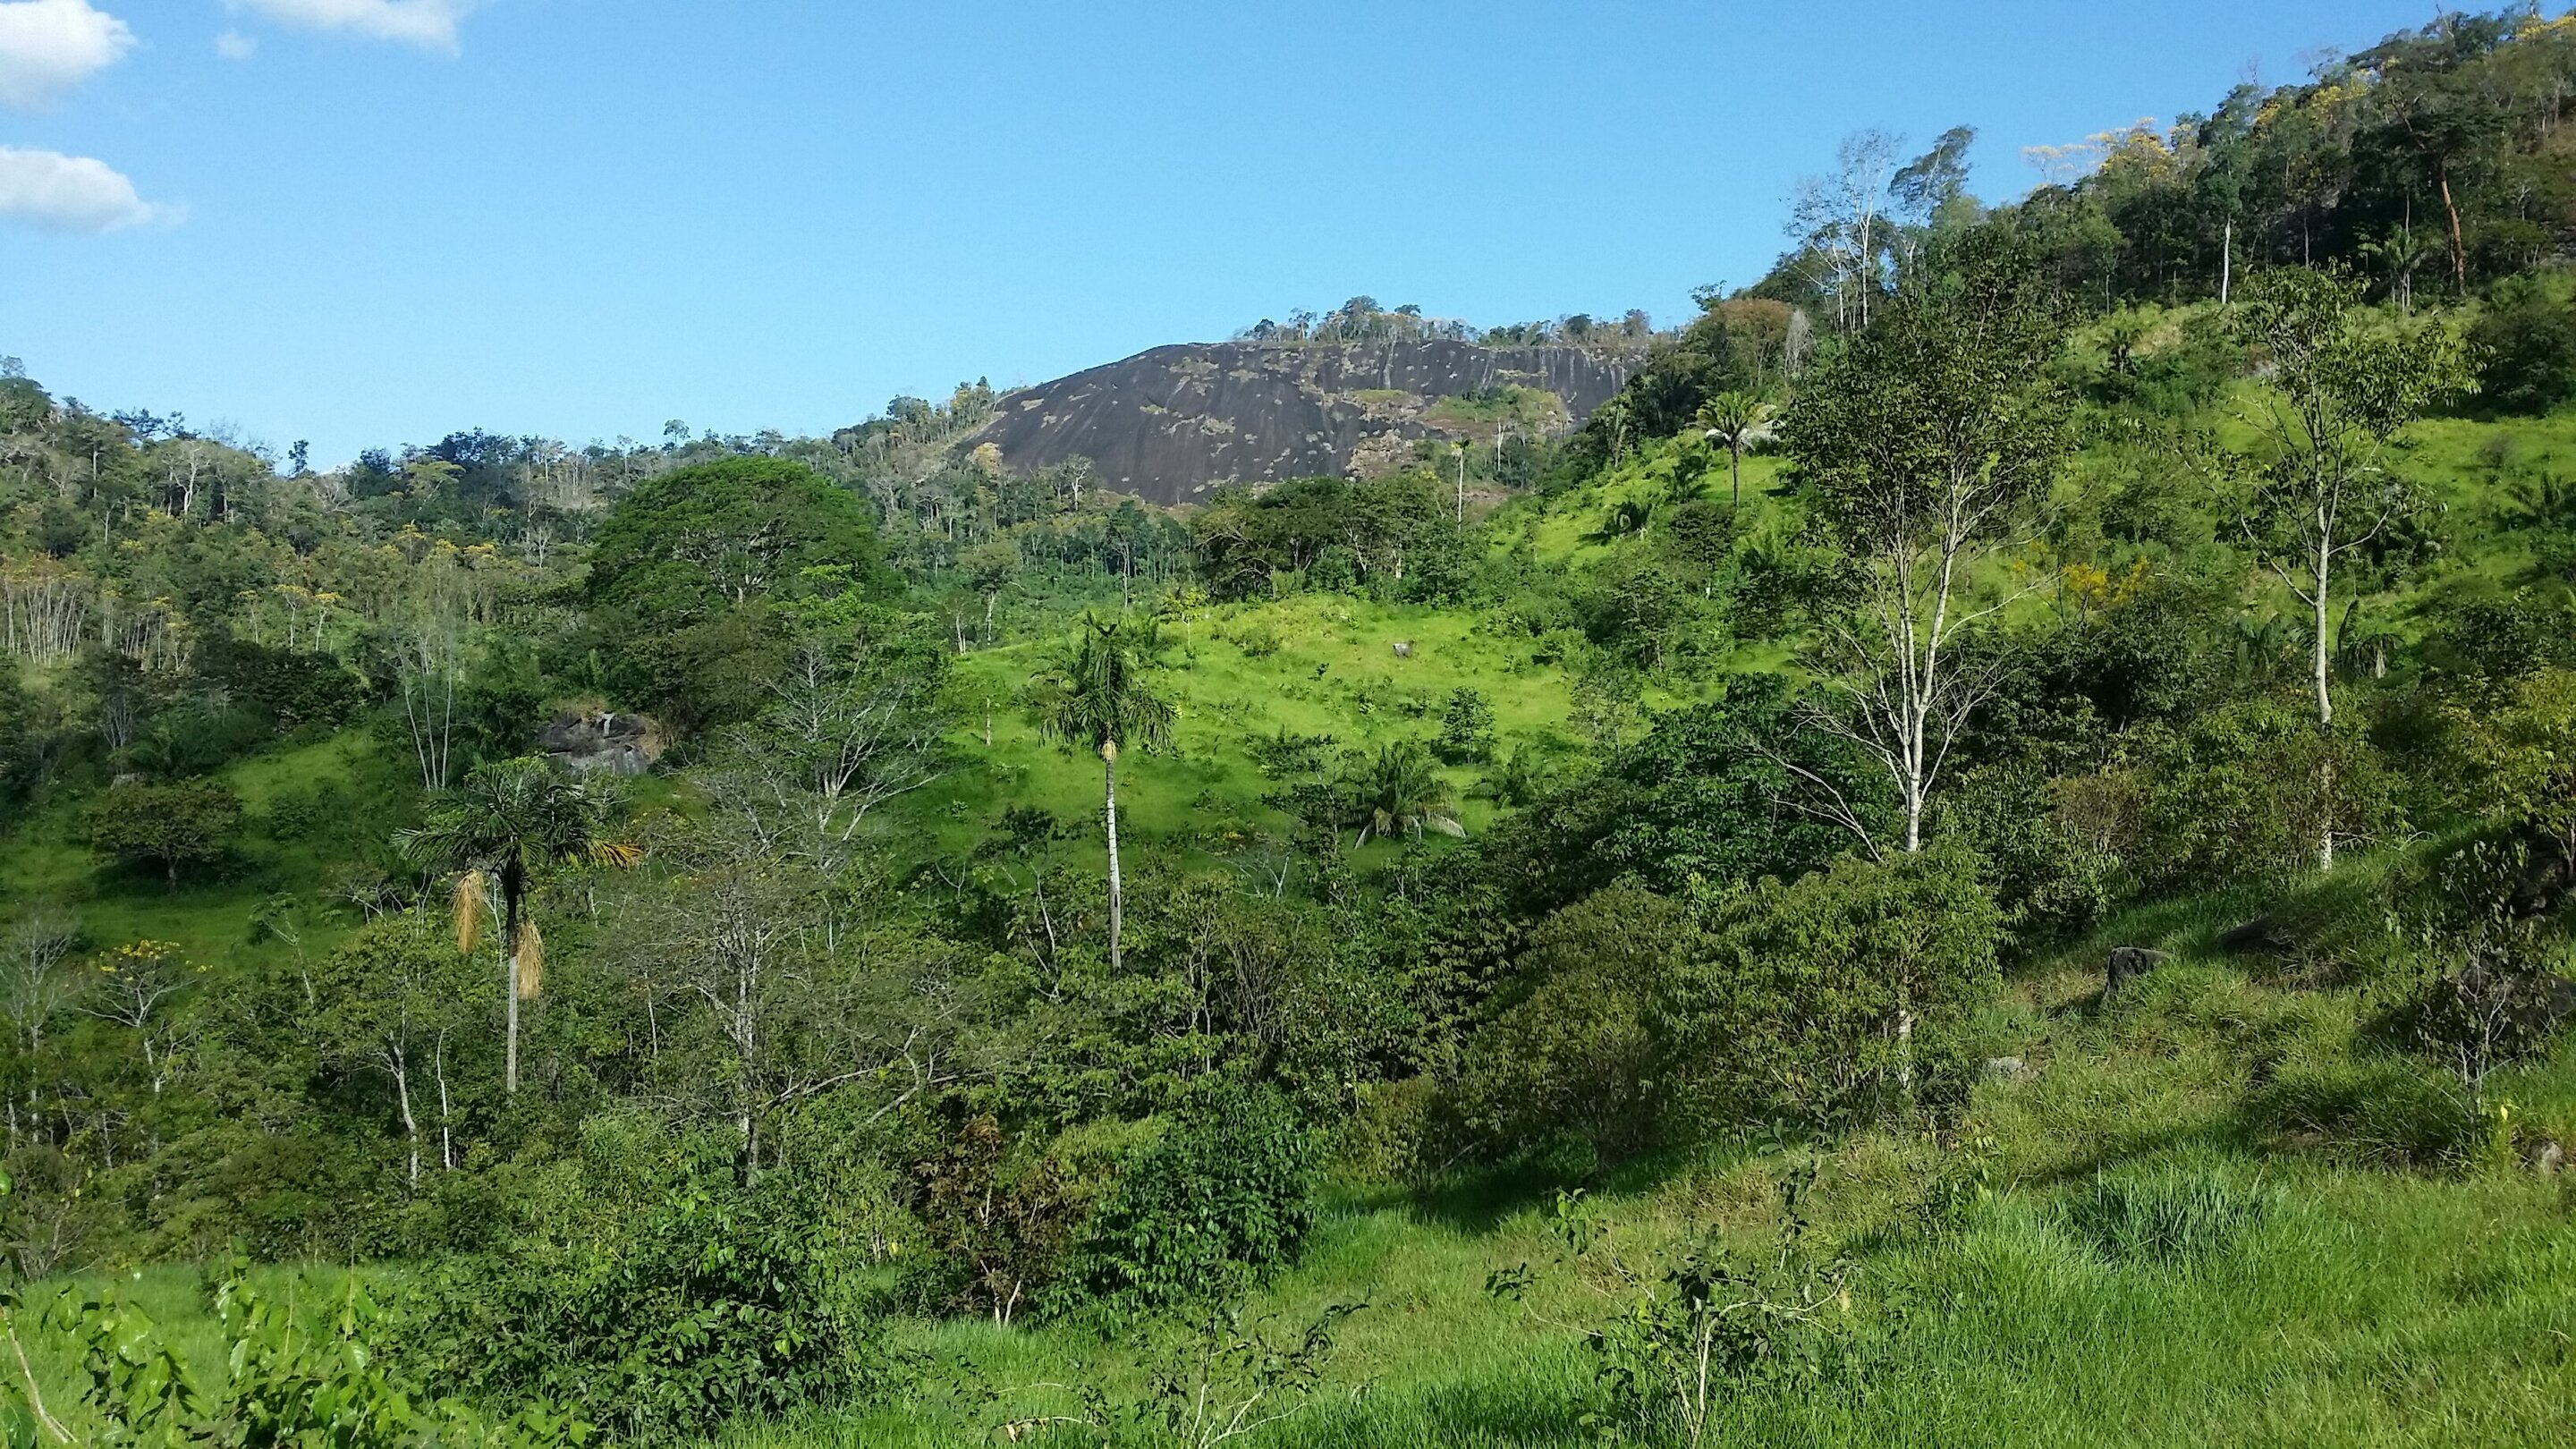 Regenerated forests offset 12% of carbon emissions in Brazilian Amazon in 33 years